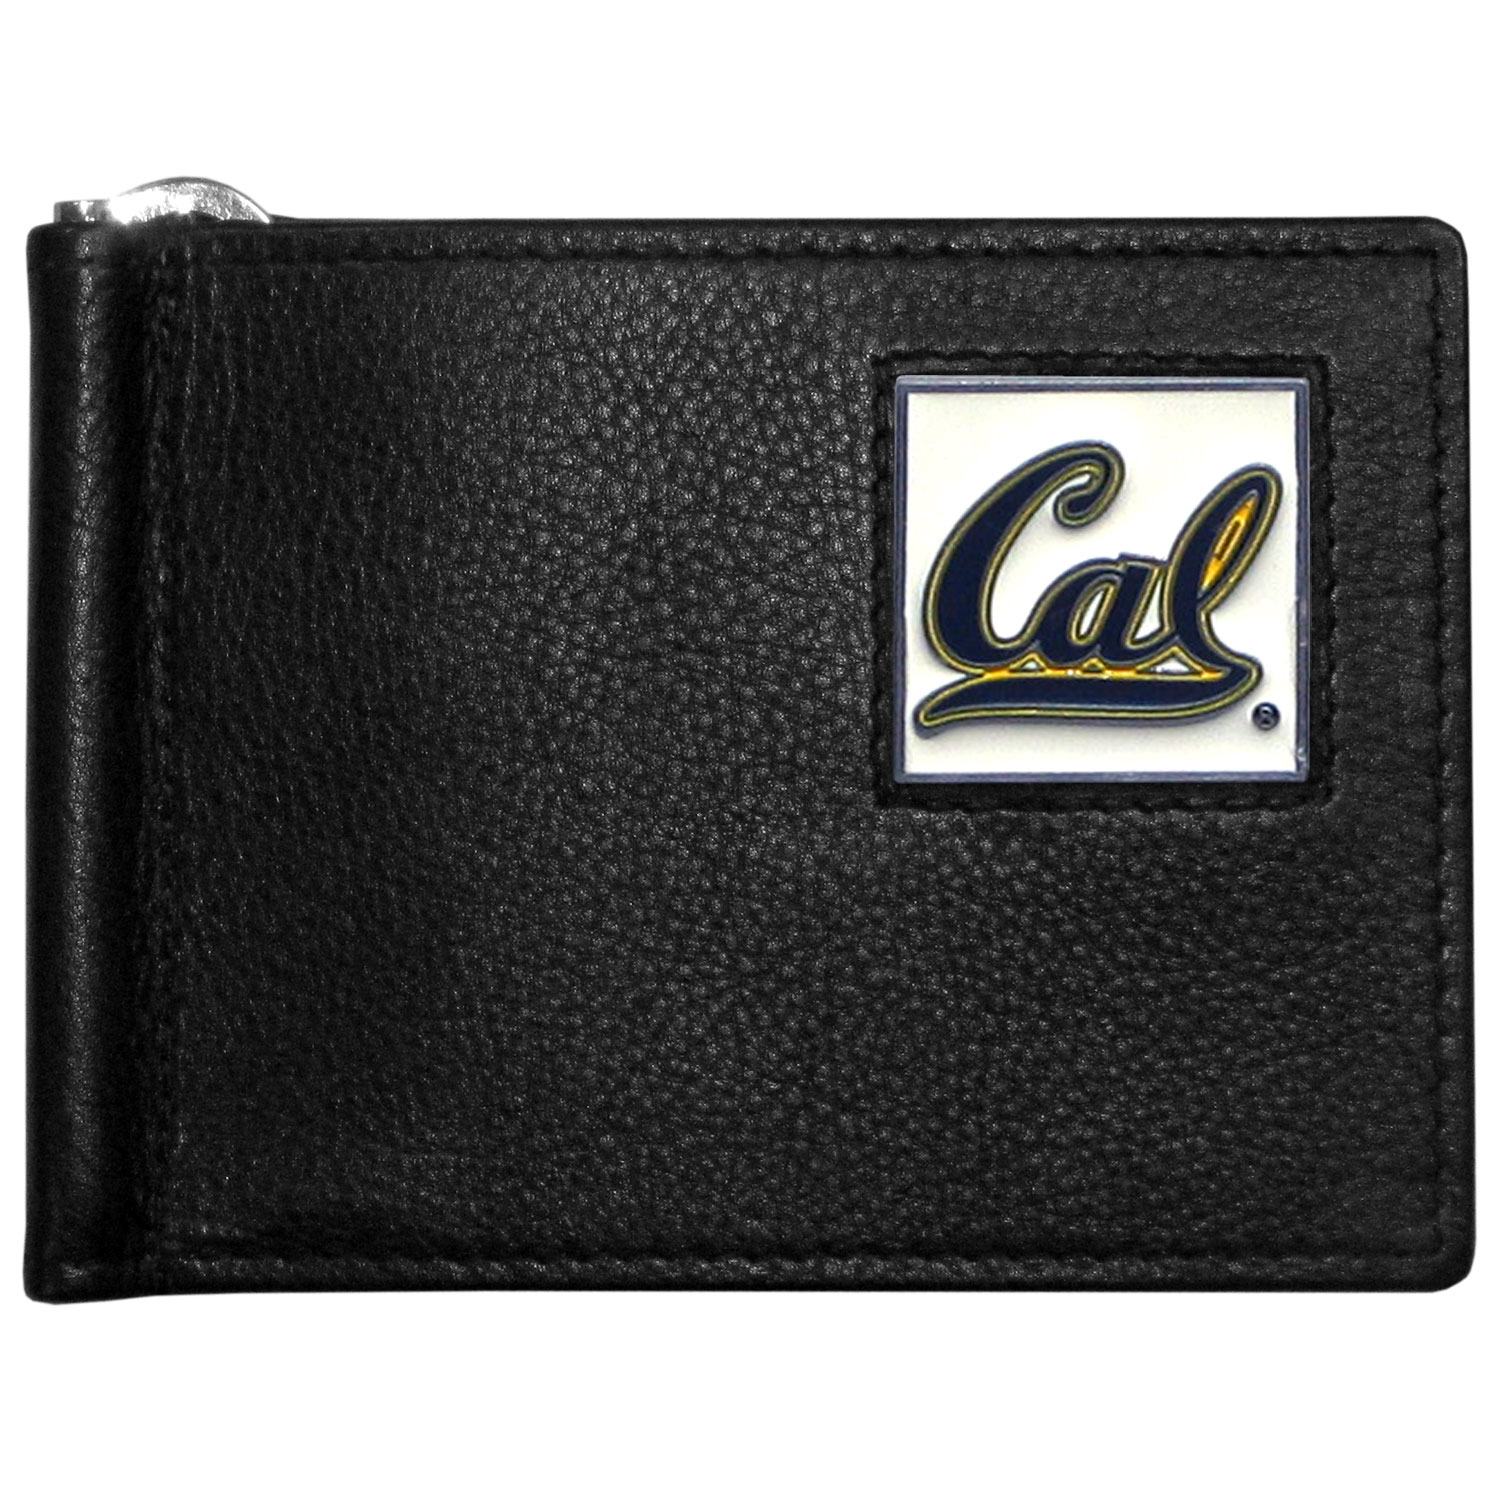 Cal Berkeley Bears Leather Bill Clip Wallet - This cool new style wallet features an inner, metal bill clip that lips up for easy access. The super slim wallet holds tons of stuff with ample pockets, credit card slots & windowed ID slot.  The wallet is made of genuine fine grain leather and it finished with a metal Cal Berkeley Bears emblem. The wallet is shipped in gift box packaging.